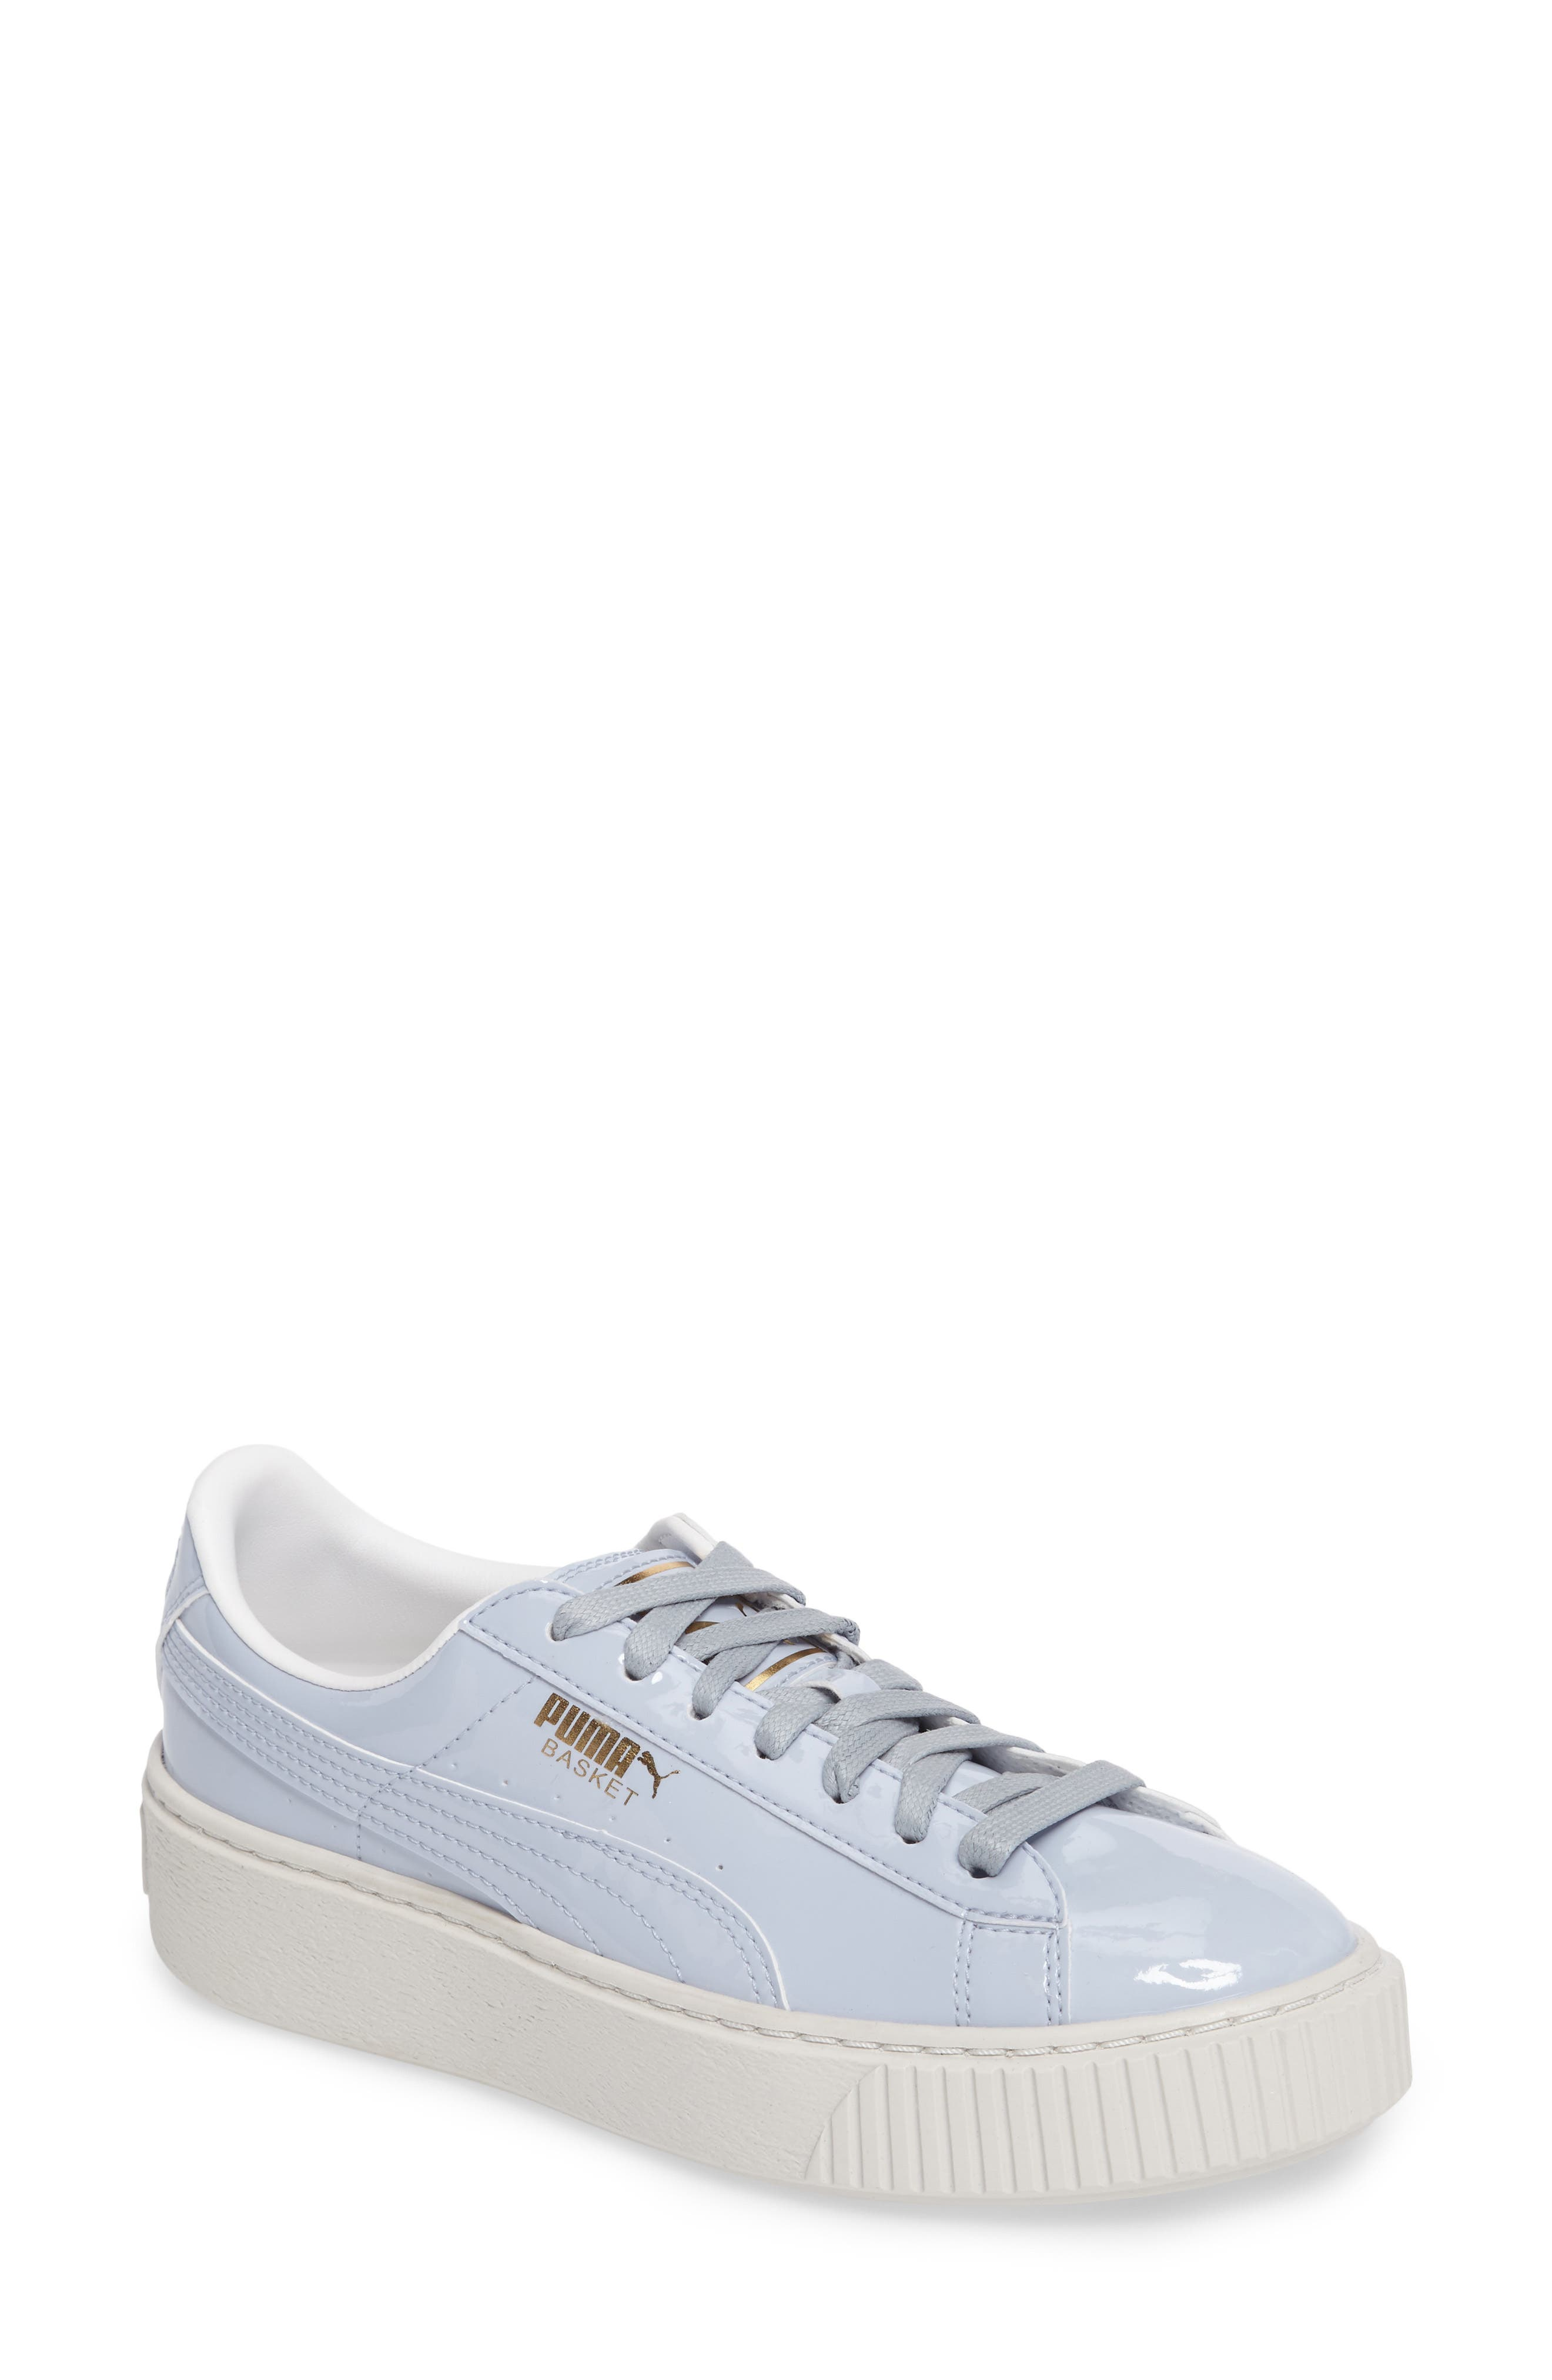 Alternate Image 1 Selected - PUMA Basket Platform Sneaker (Women)